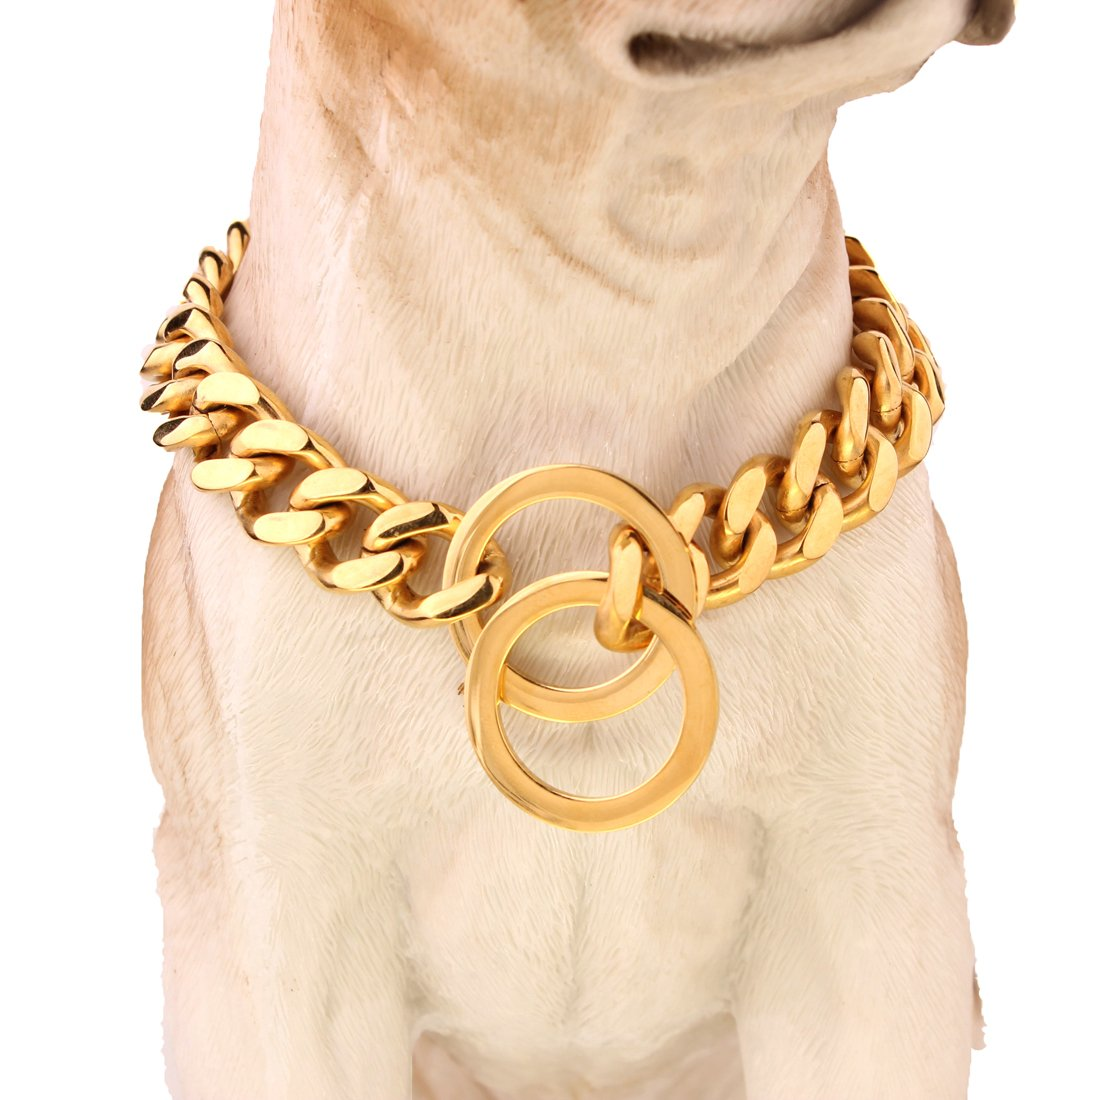 Fashion Gold Tone Stainless Steel 15mm Curb Dog Pet Chains Collars Necklace 12''-36'' (18inch)